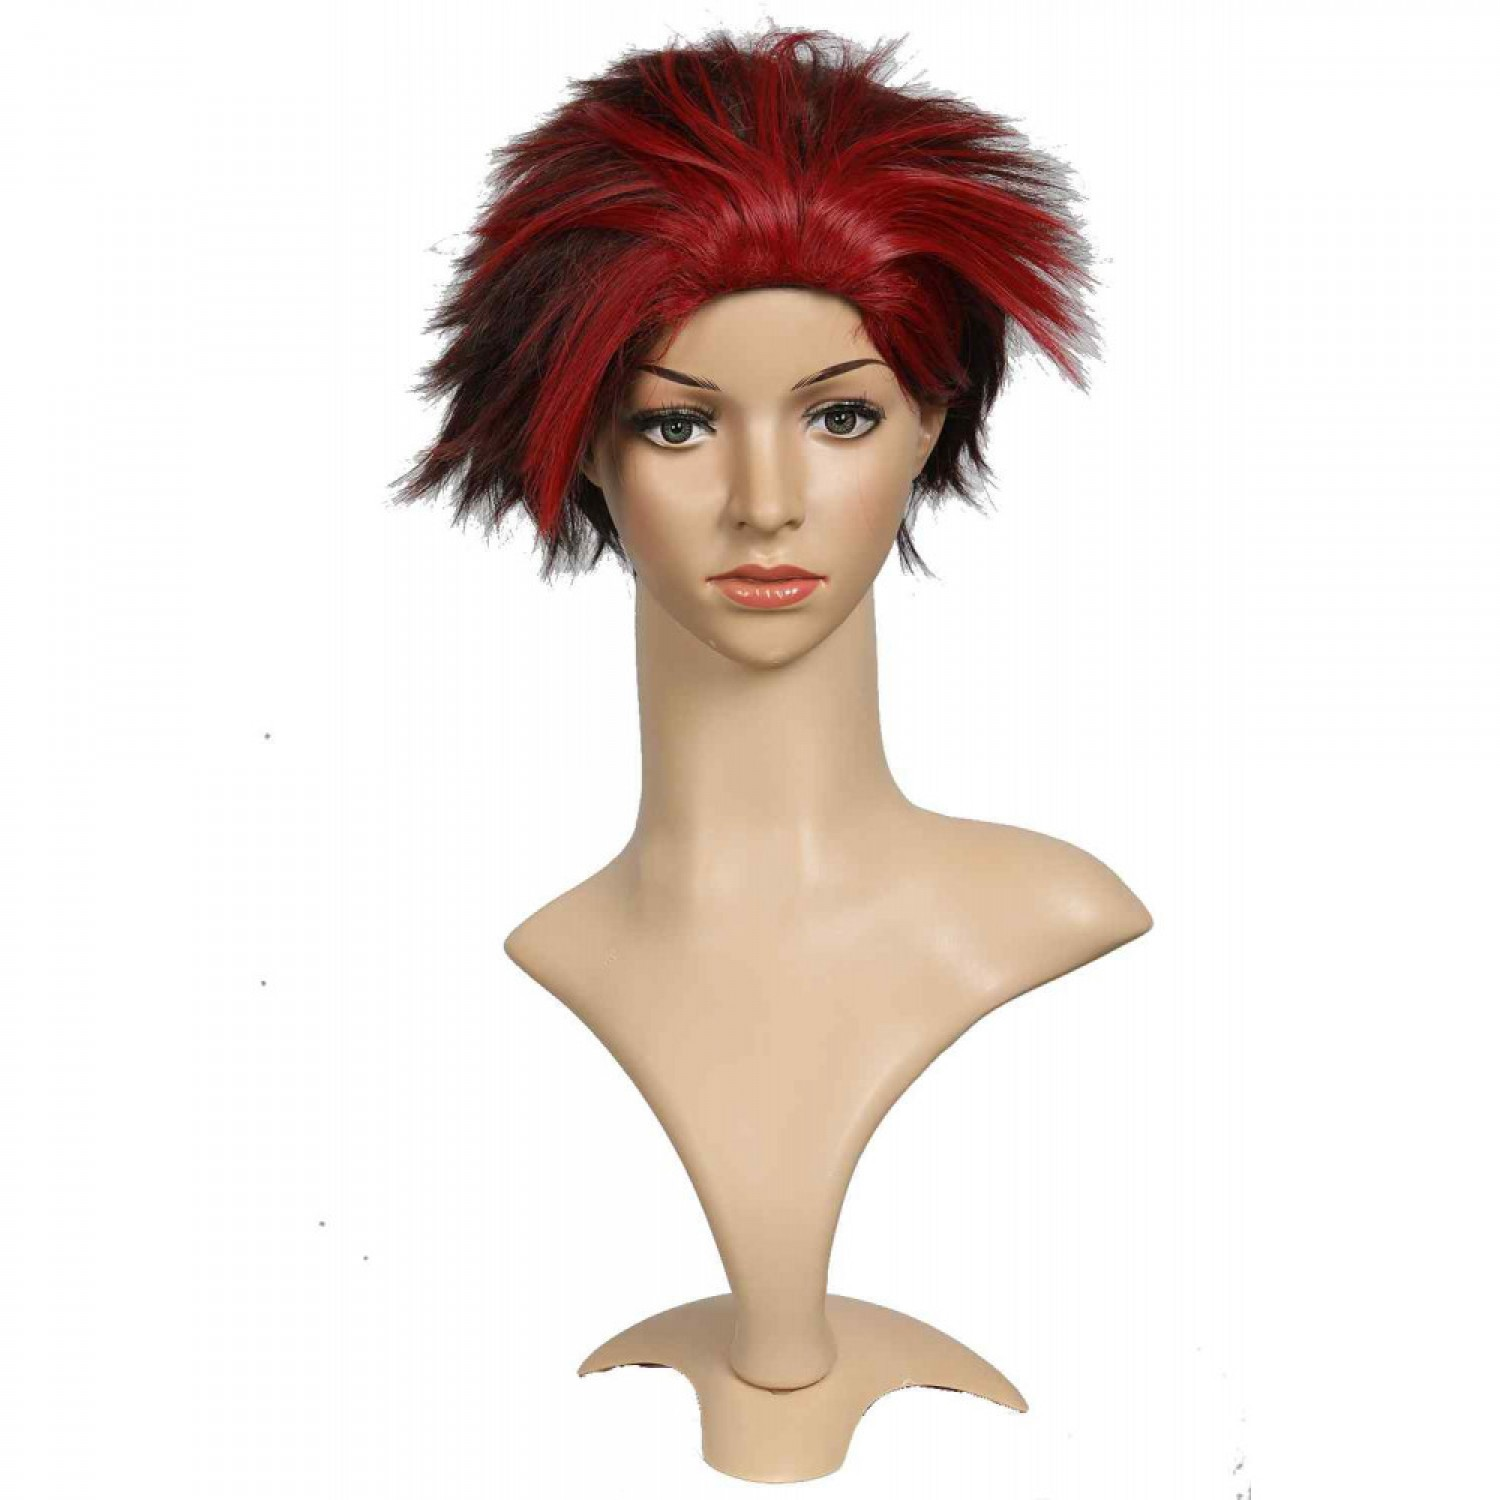 Art3mis Wig Cosplay Wig Ready Player Costume One Game Hair Props Accessories Halloween